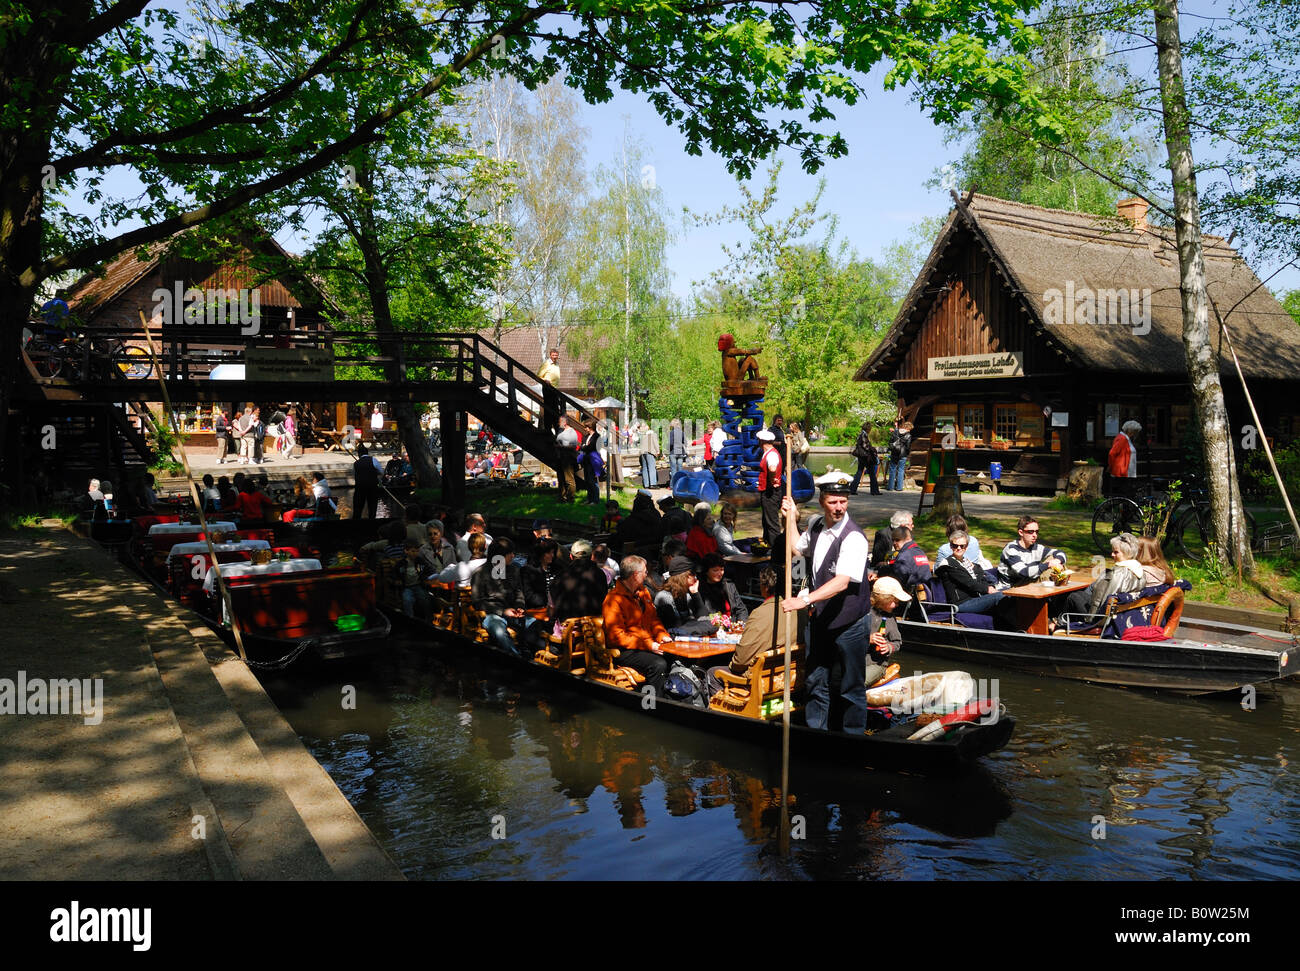 punt boats in lehde village in spreewald forest region eastern stock photo 17760896 alamy. Black Bedroom Furniture Sets. Home Design Ideas